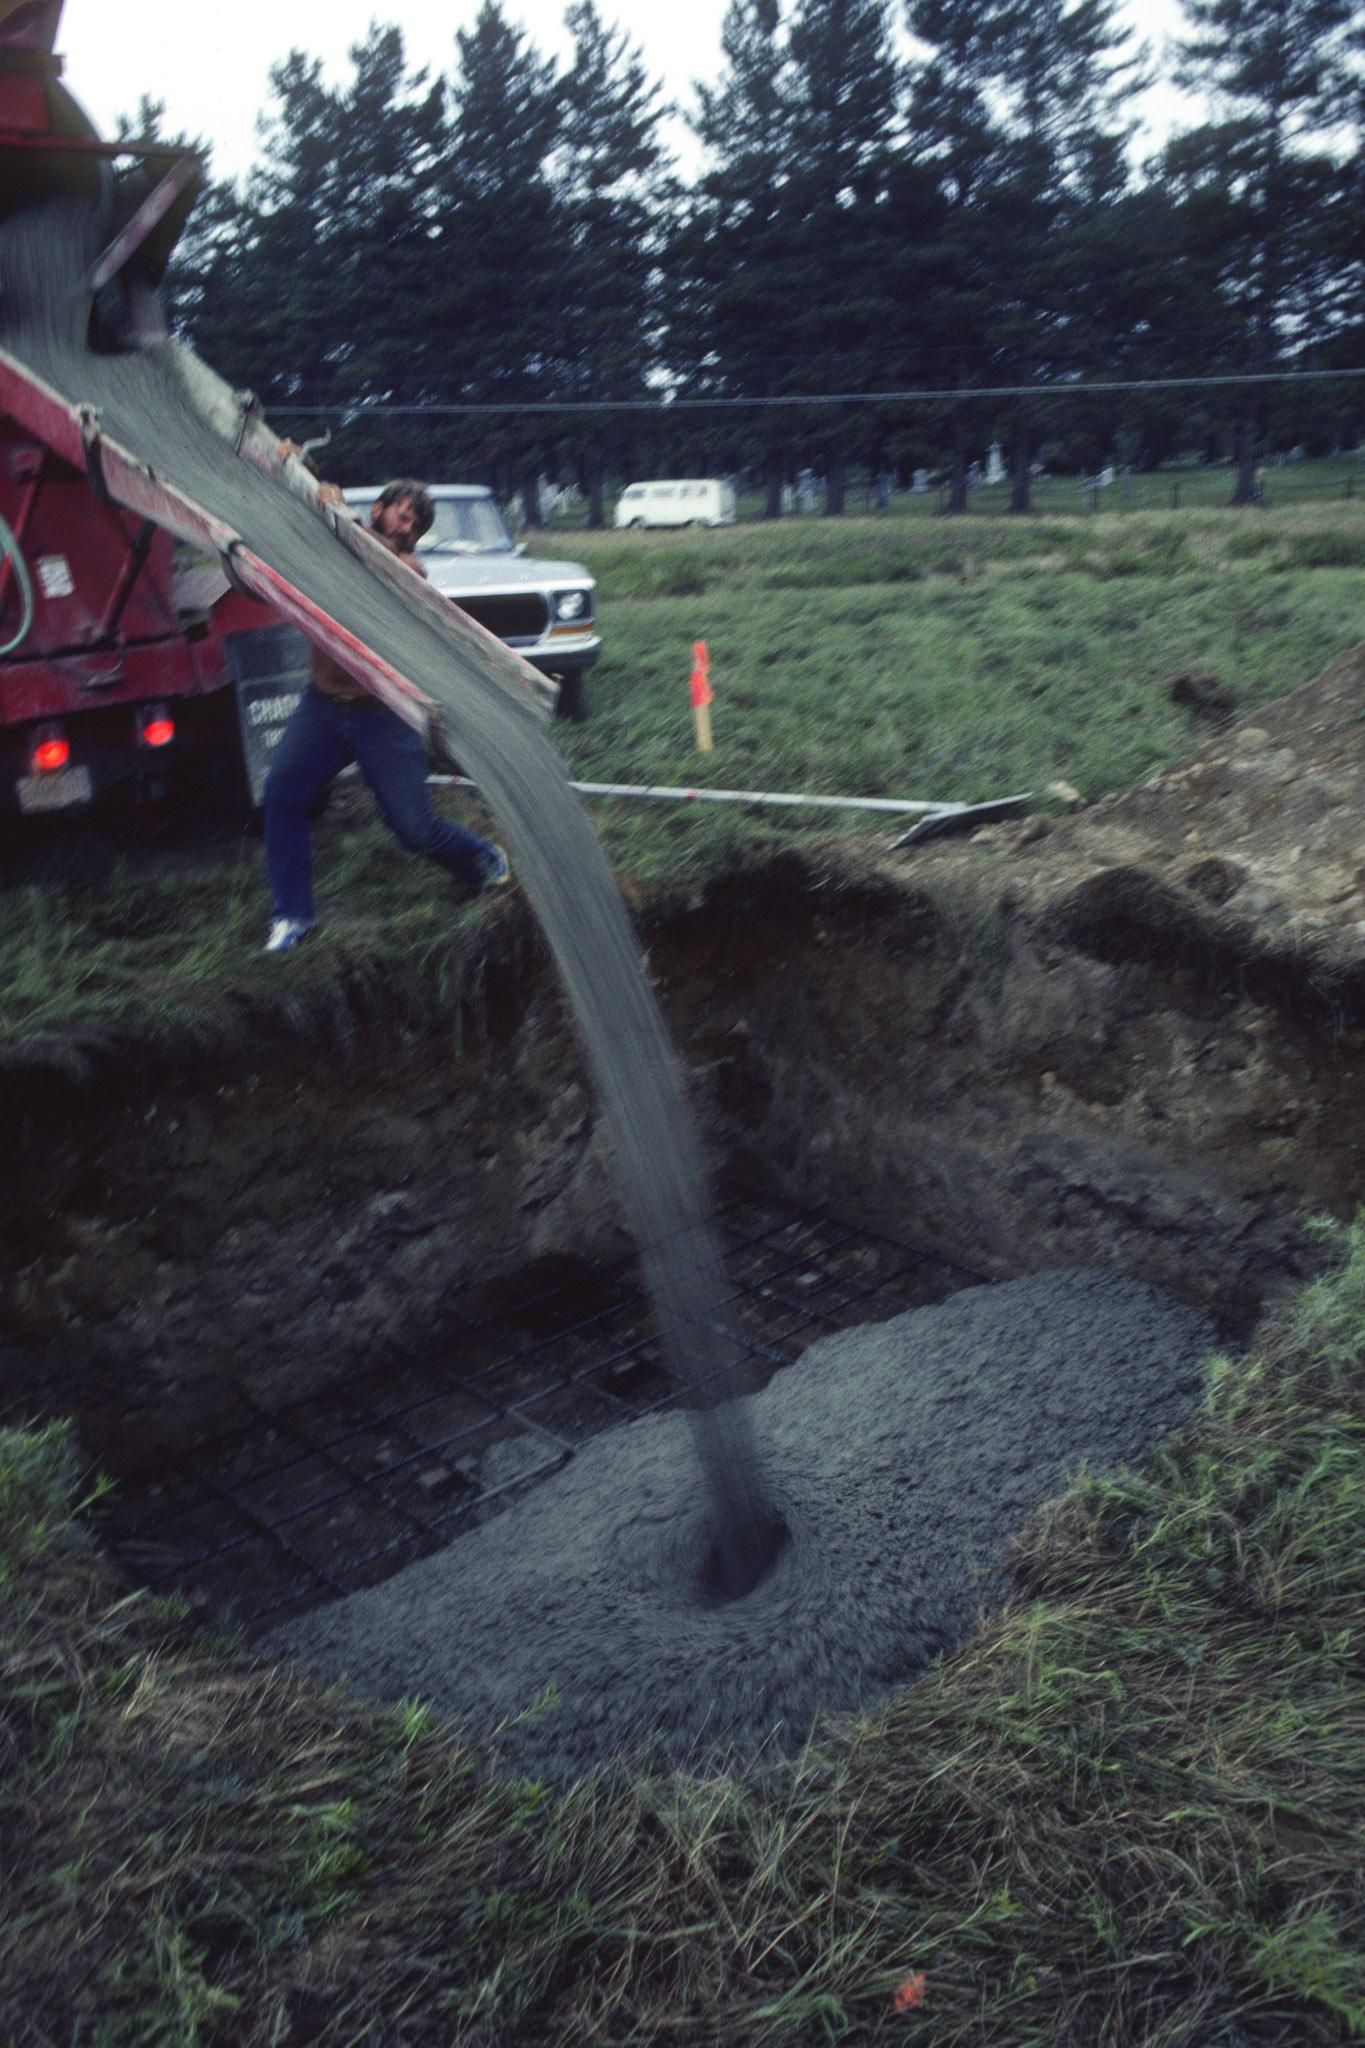 pouring concrete out of a chute into a square hole in a green grassy field